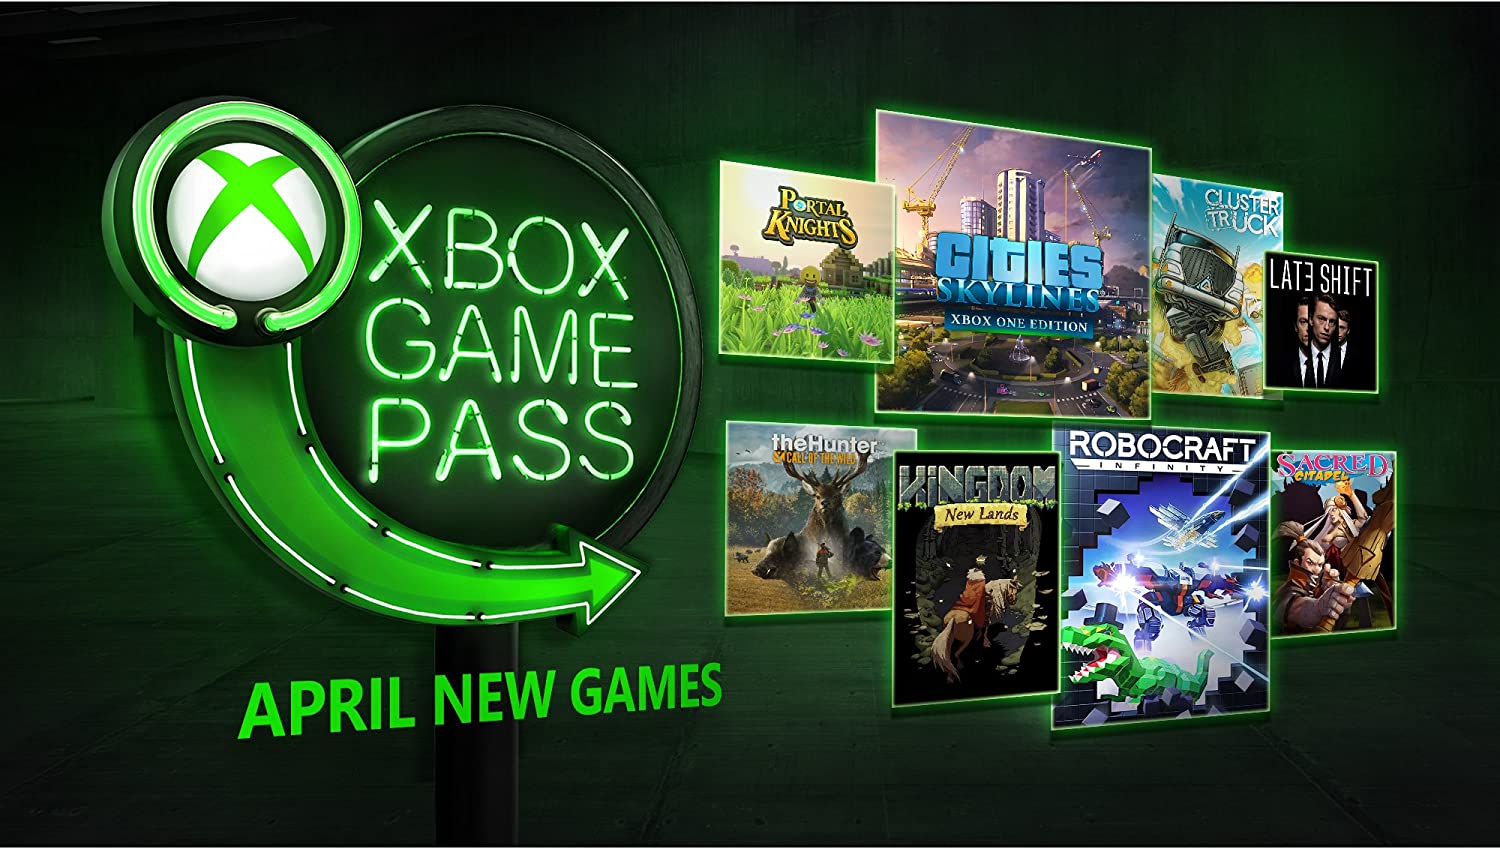 Amazon.com: Xbox Game Pass: 6 Month Membership [Digital Code ...